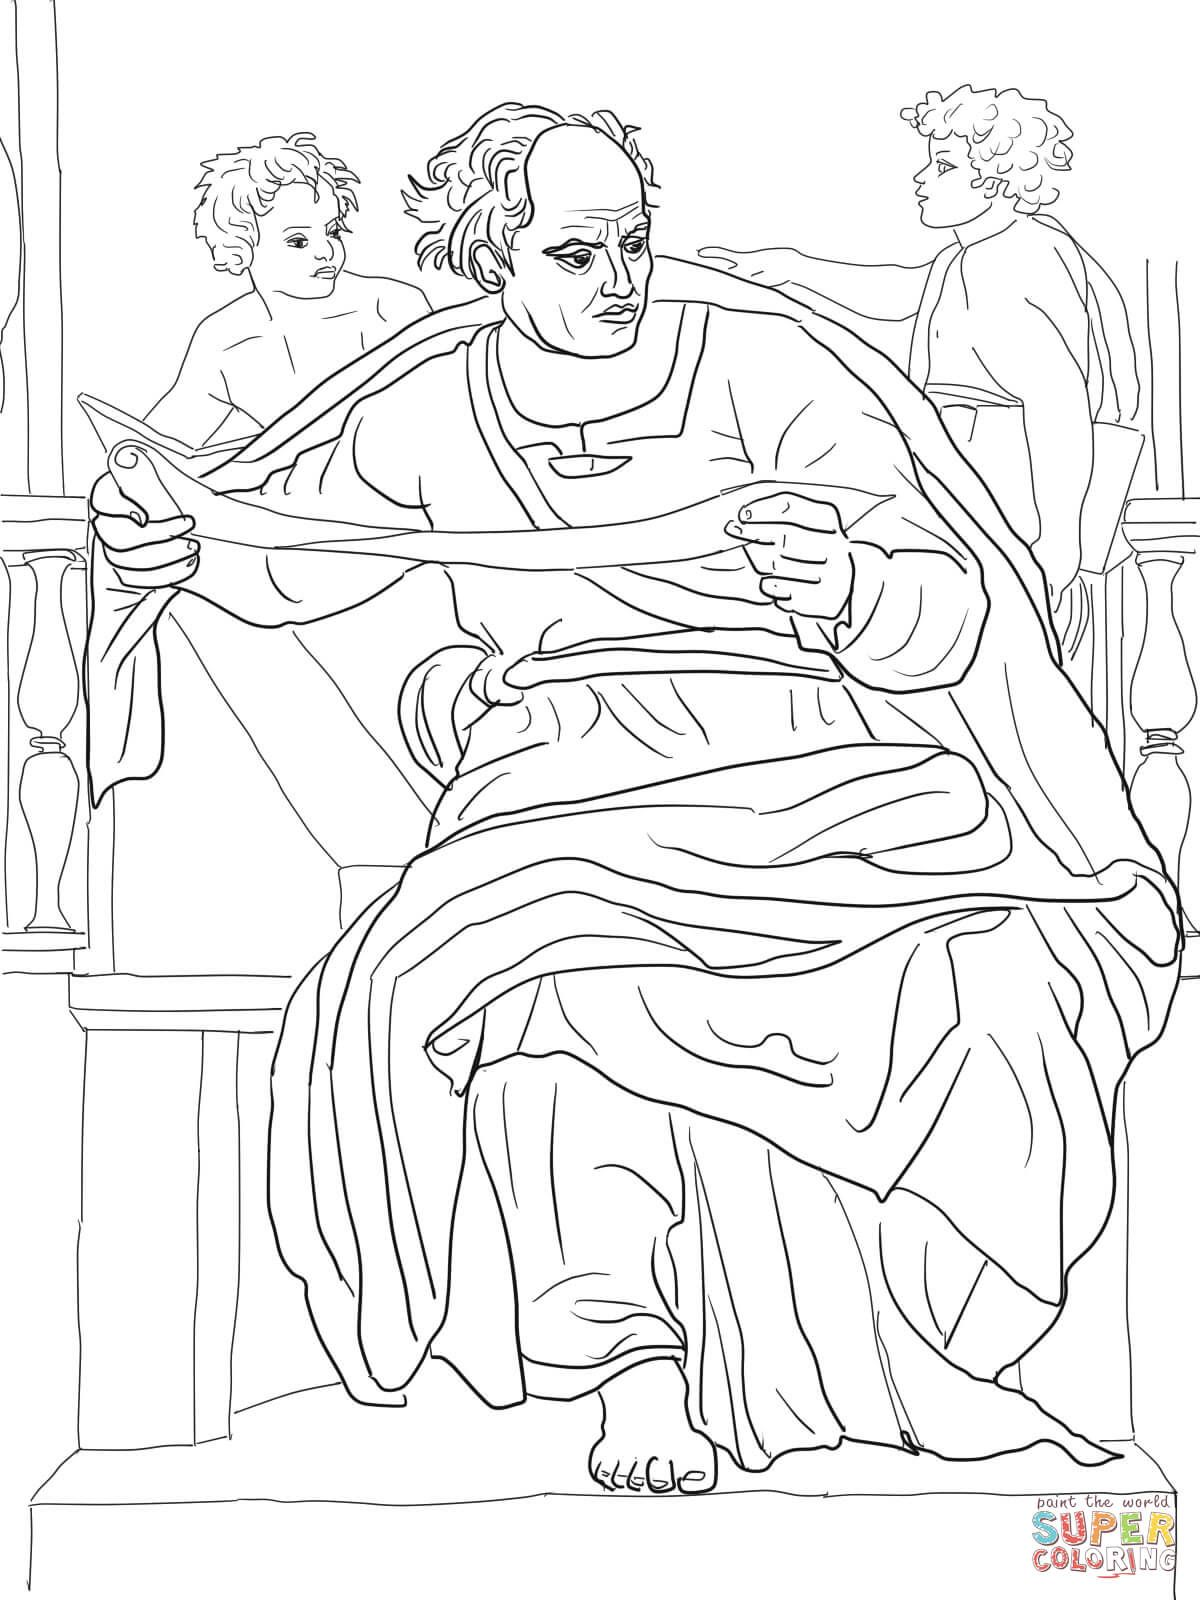 Prophet Joel Coloring Page From Michelangelo Category